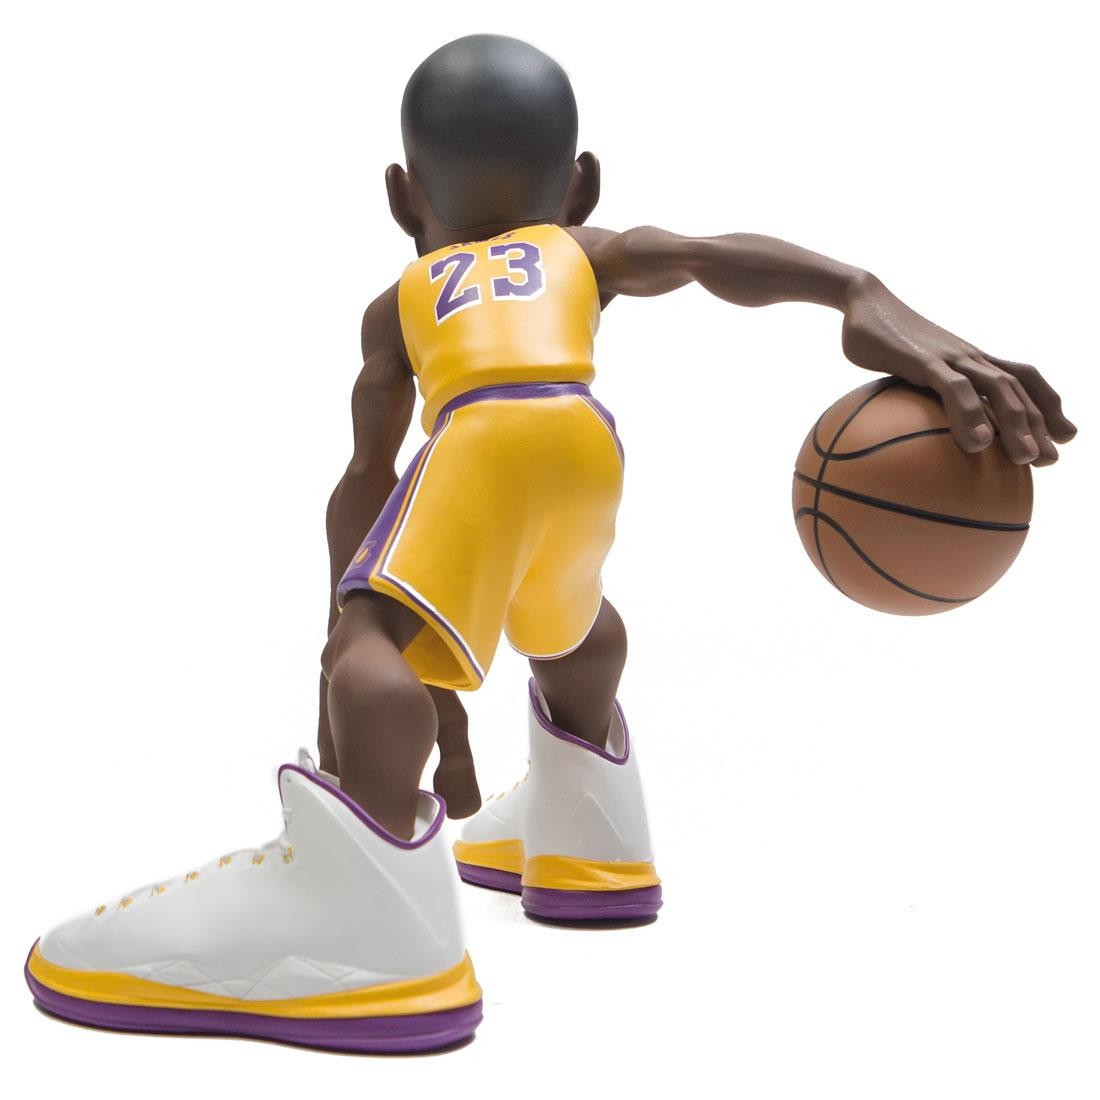 newest 1fc43 30d1f IconAI Small Stars NBA 2018-2019 Lebron James 11 Inch Figure - Lakers Gold  Jersey (gold)